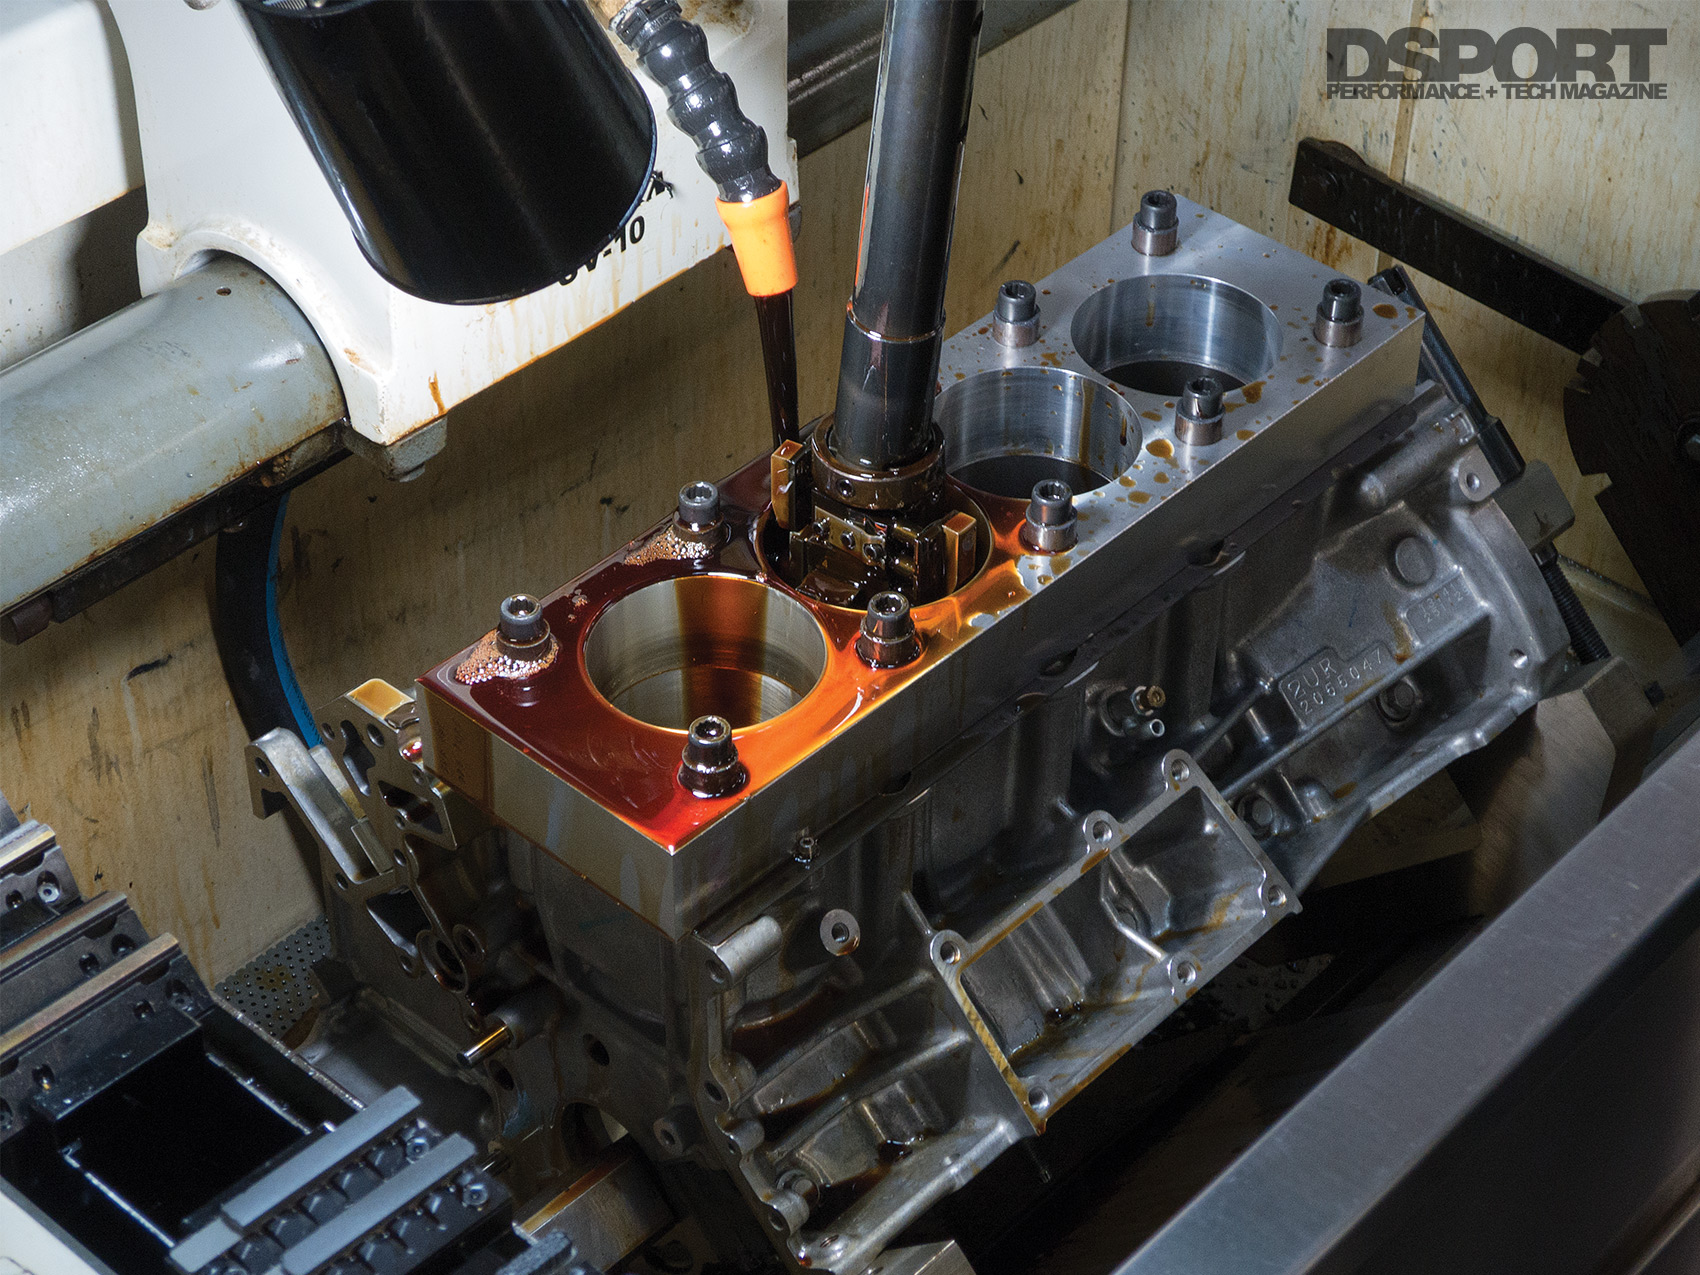 Quick Tech: Performance Engine Break-In the Right Way